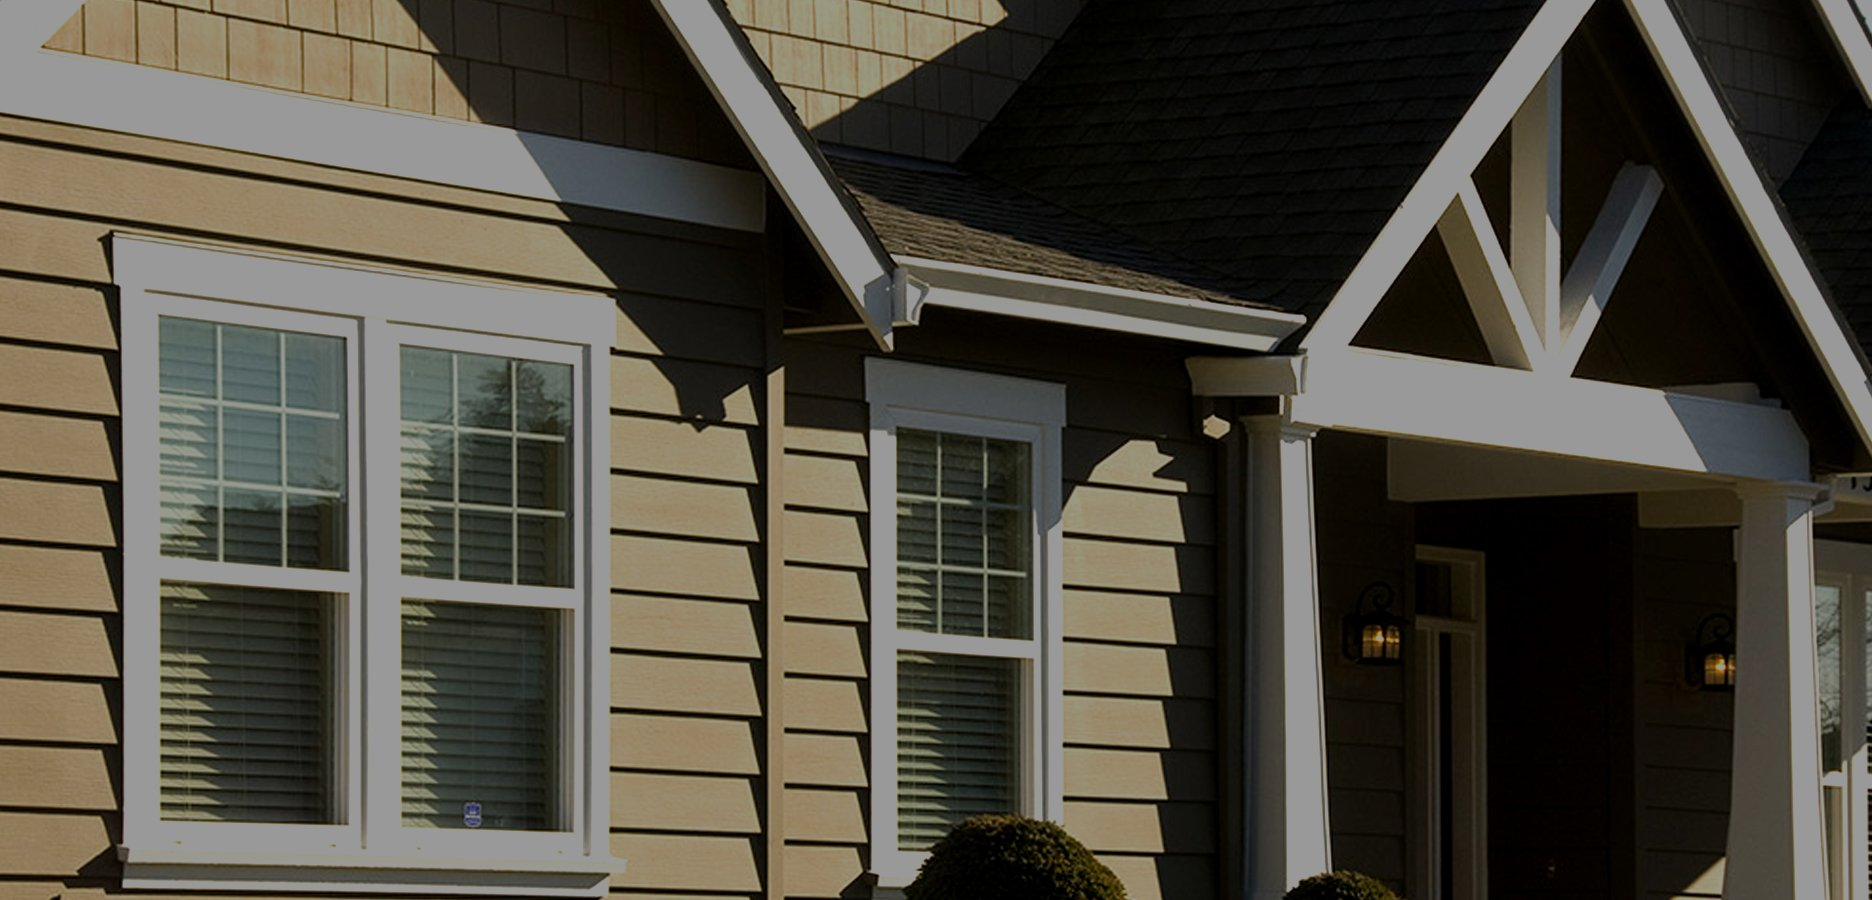 King Siding Amp Gutters Long Island Roof Repair Siding